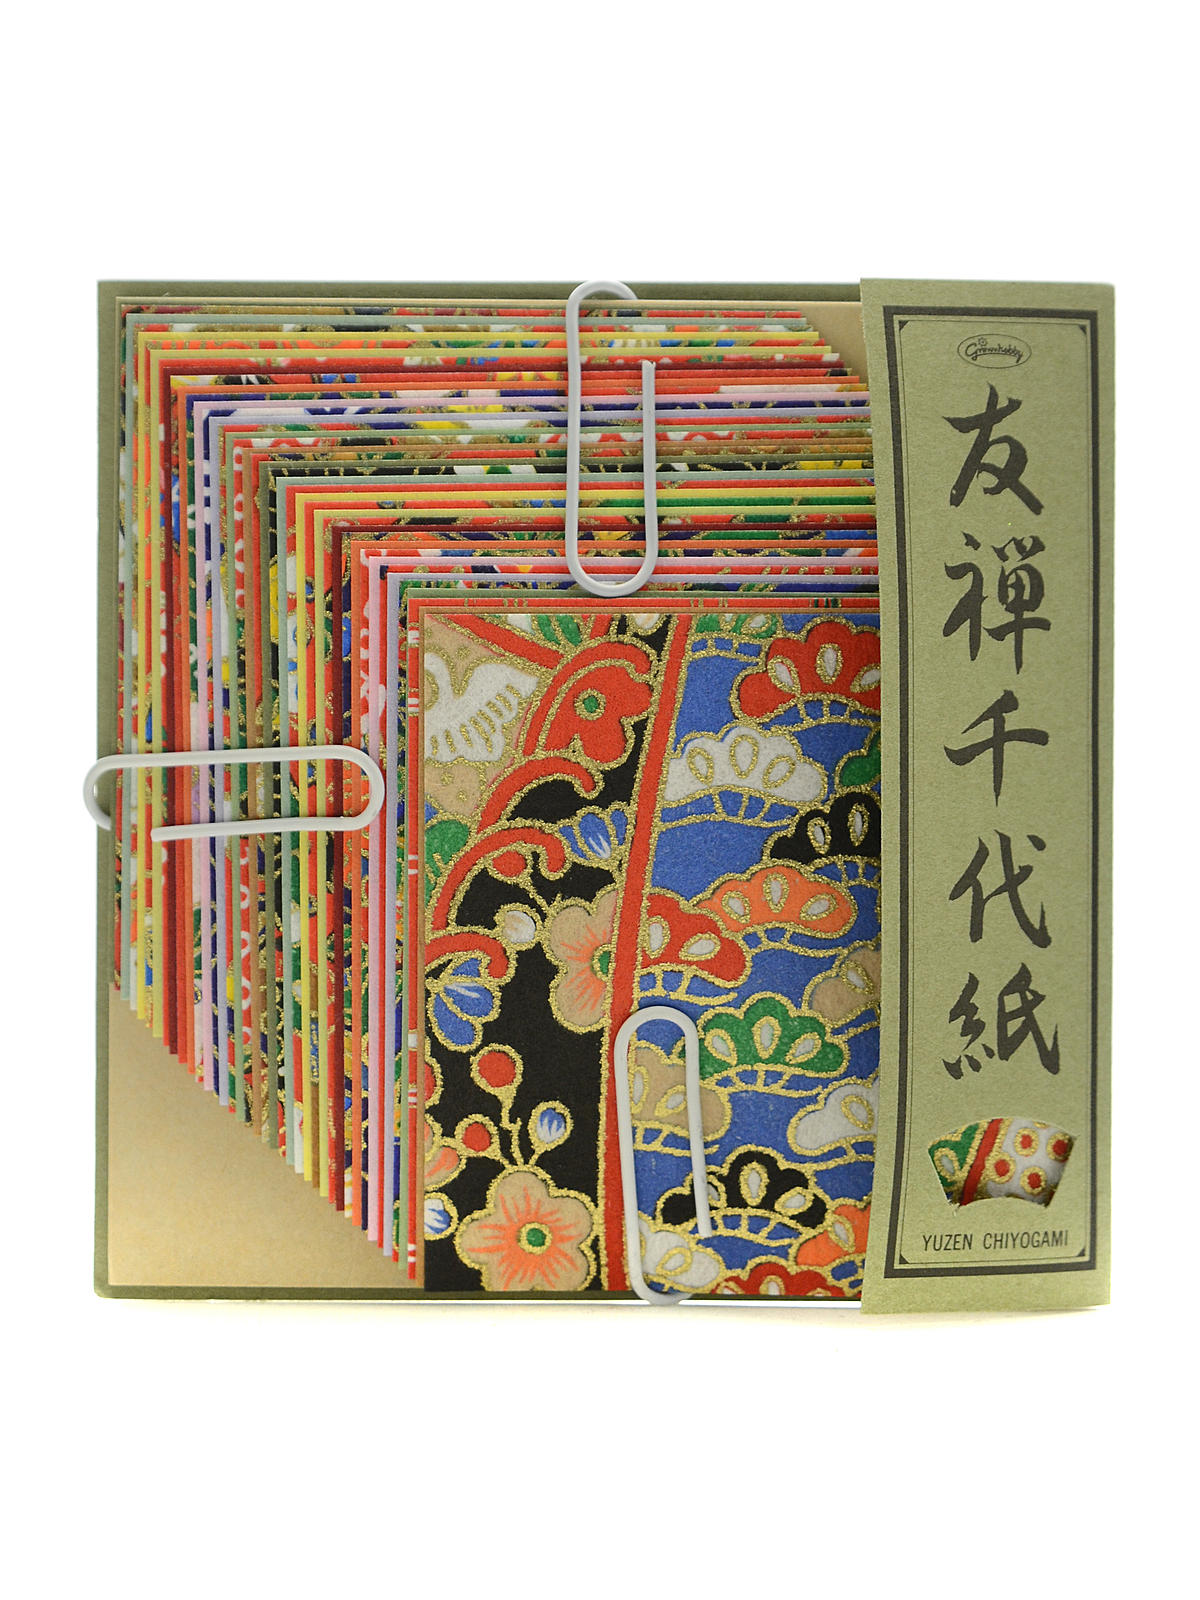 Origami Paper 2 3 8 In. X 2 3 8 In. Yusen Chiyogami Washi 40 Sheets